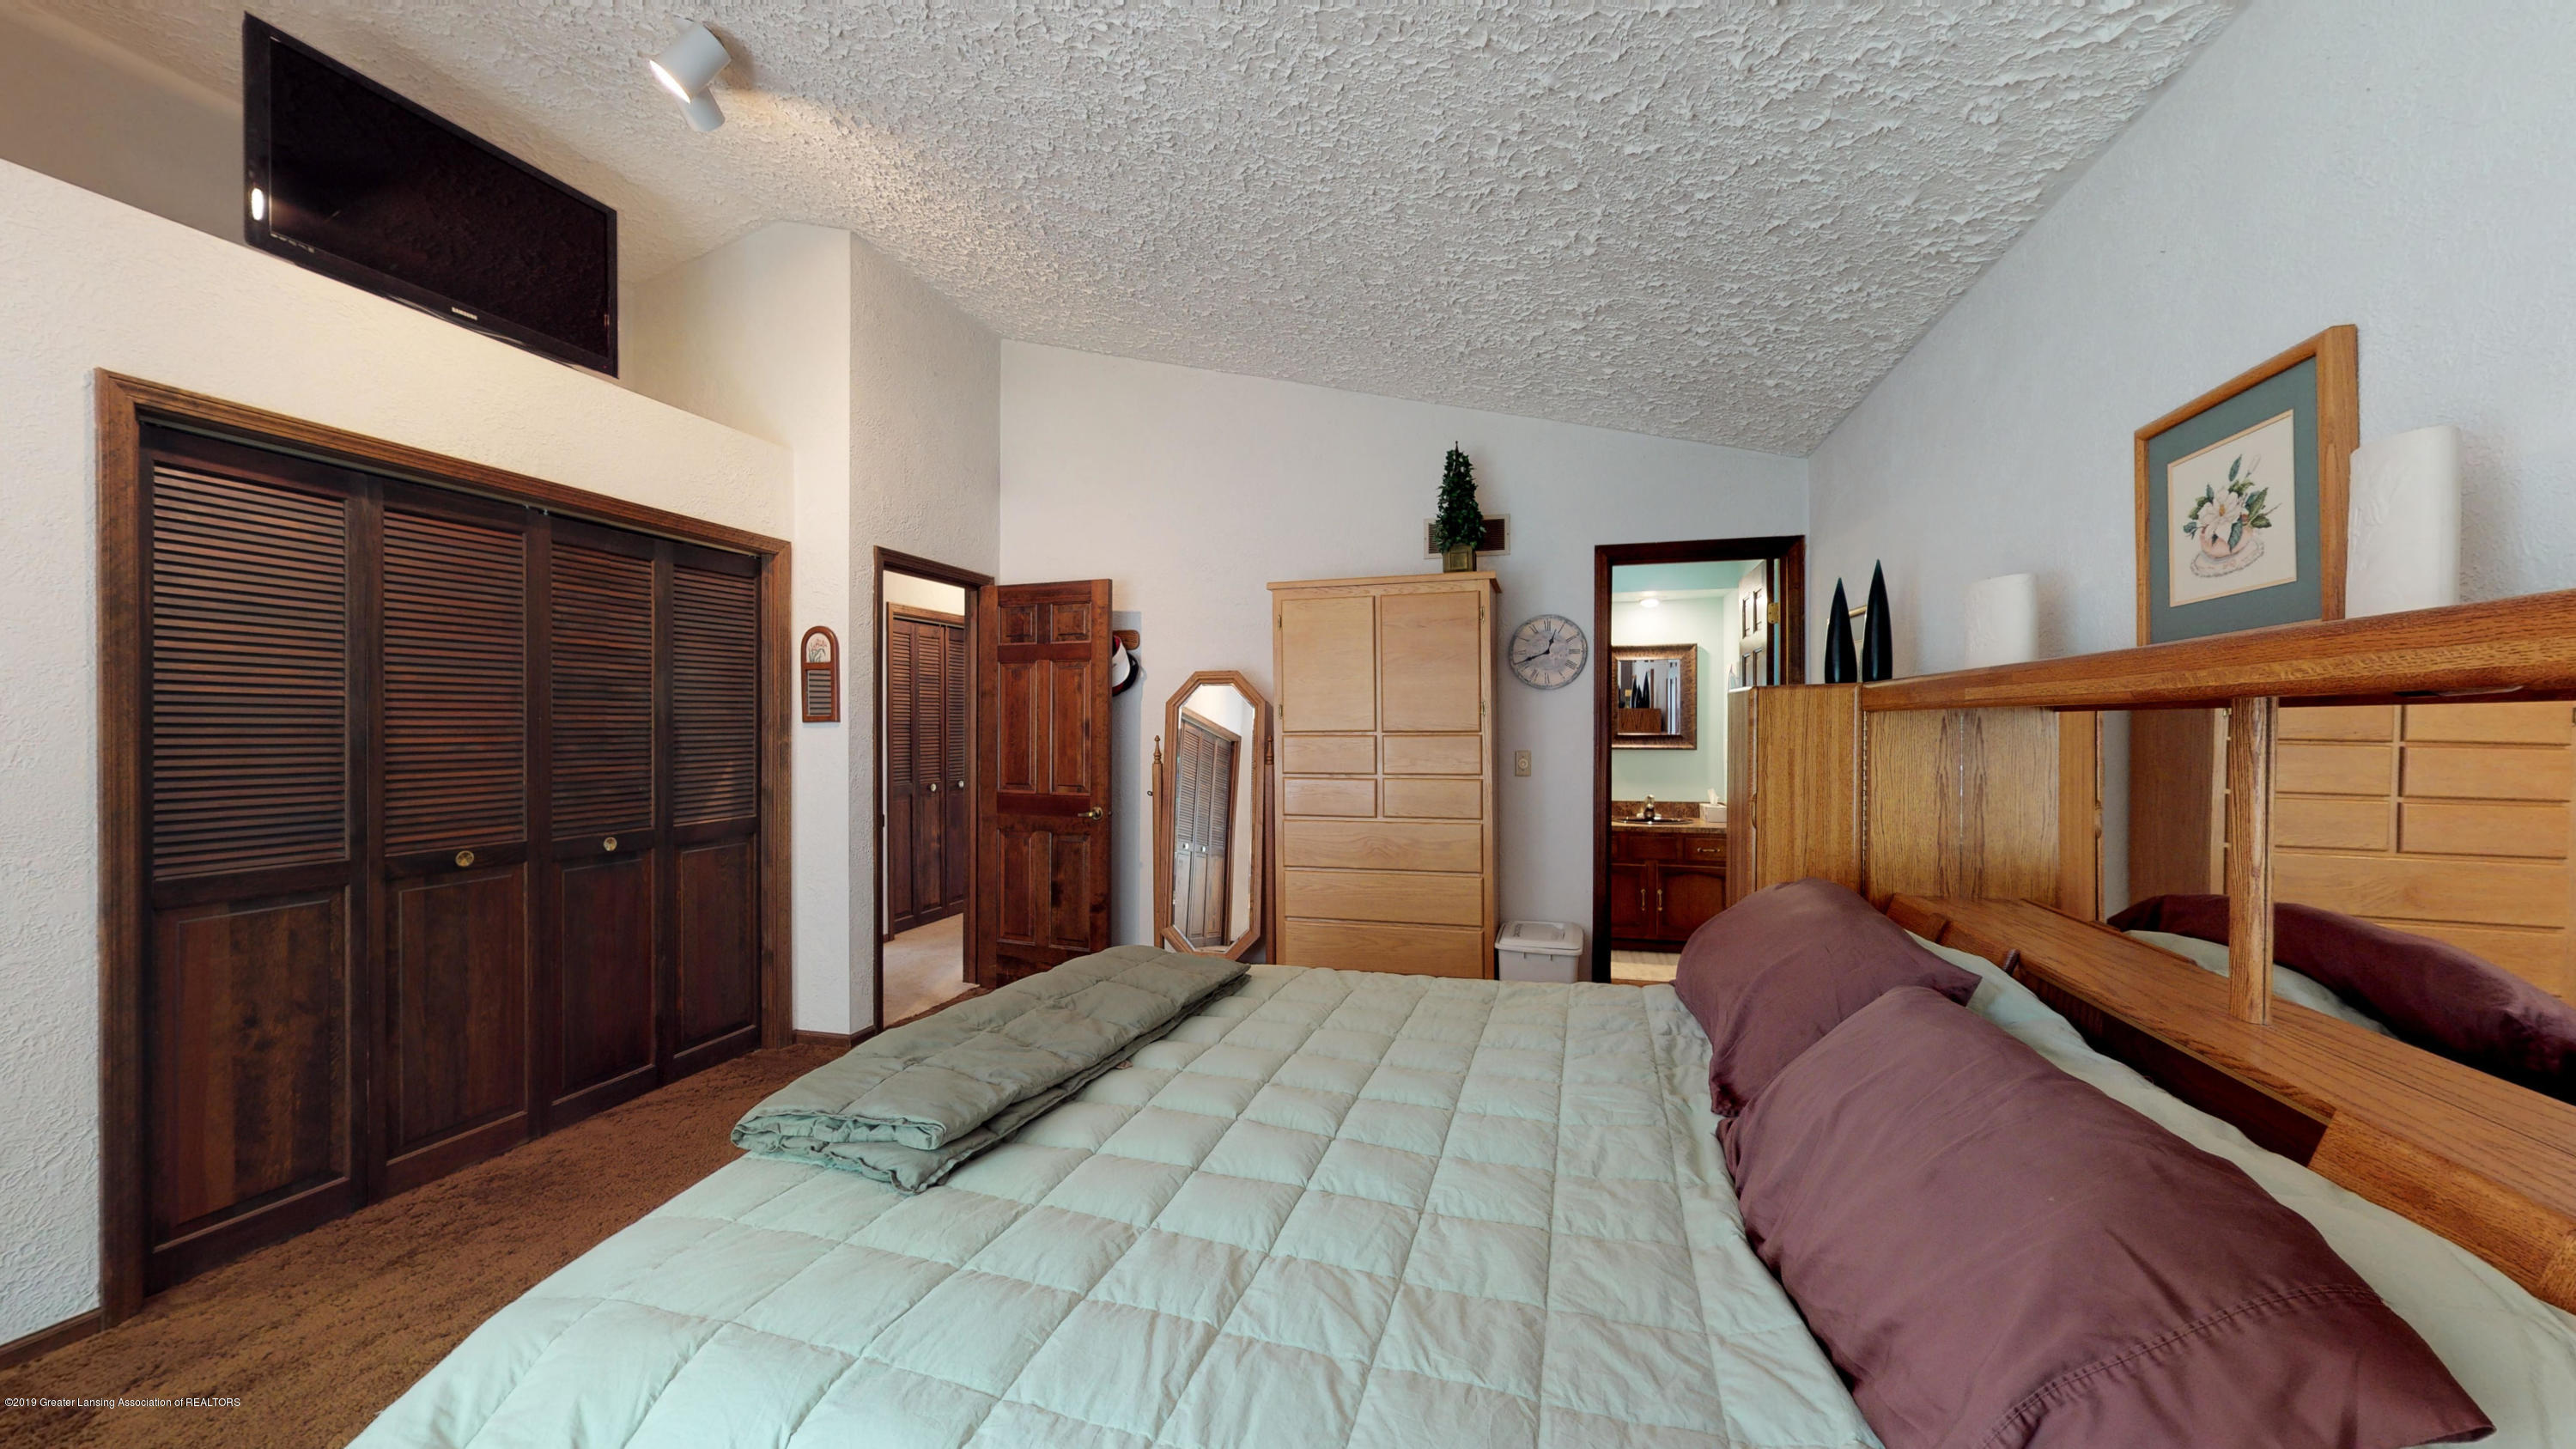 3708 David Ln - 3708-David-Lane-Master-Bedroom_081322 - 31